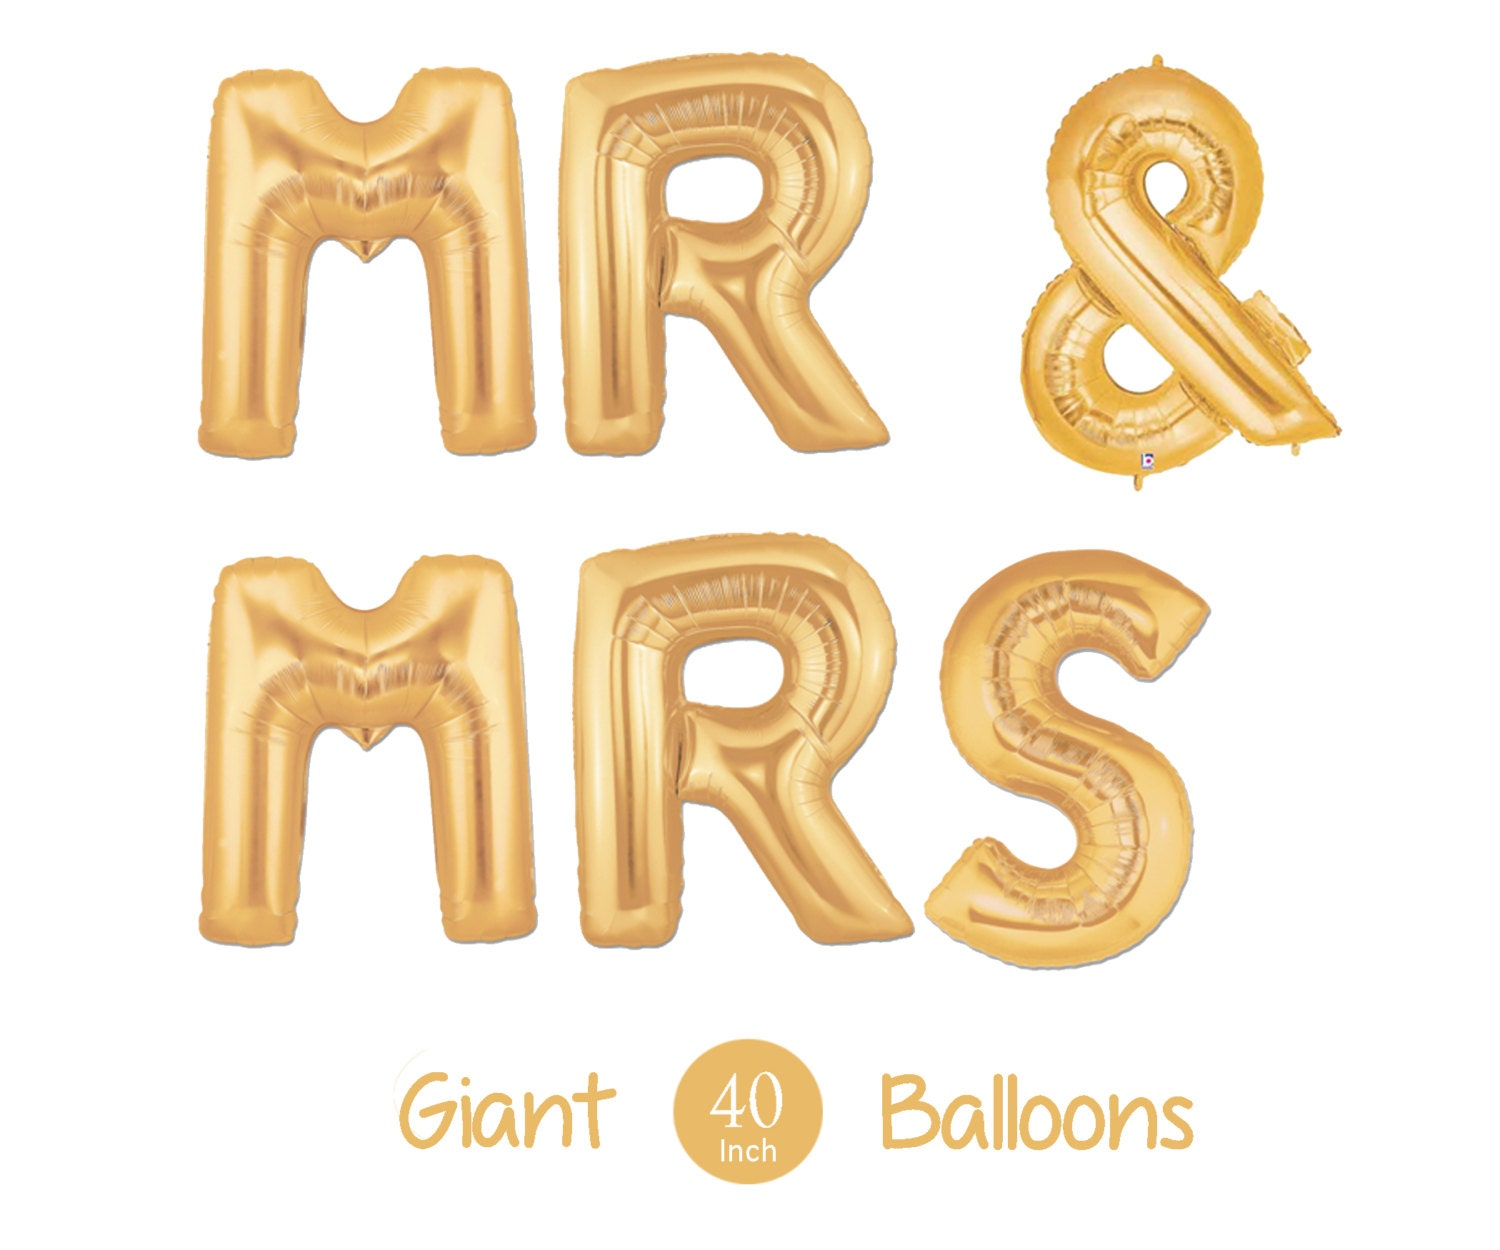 Giant mr and mrs balloons 40quot inch gold mylar balloons for Mr and mrs letter balloons